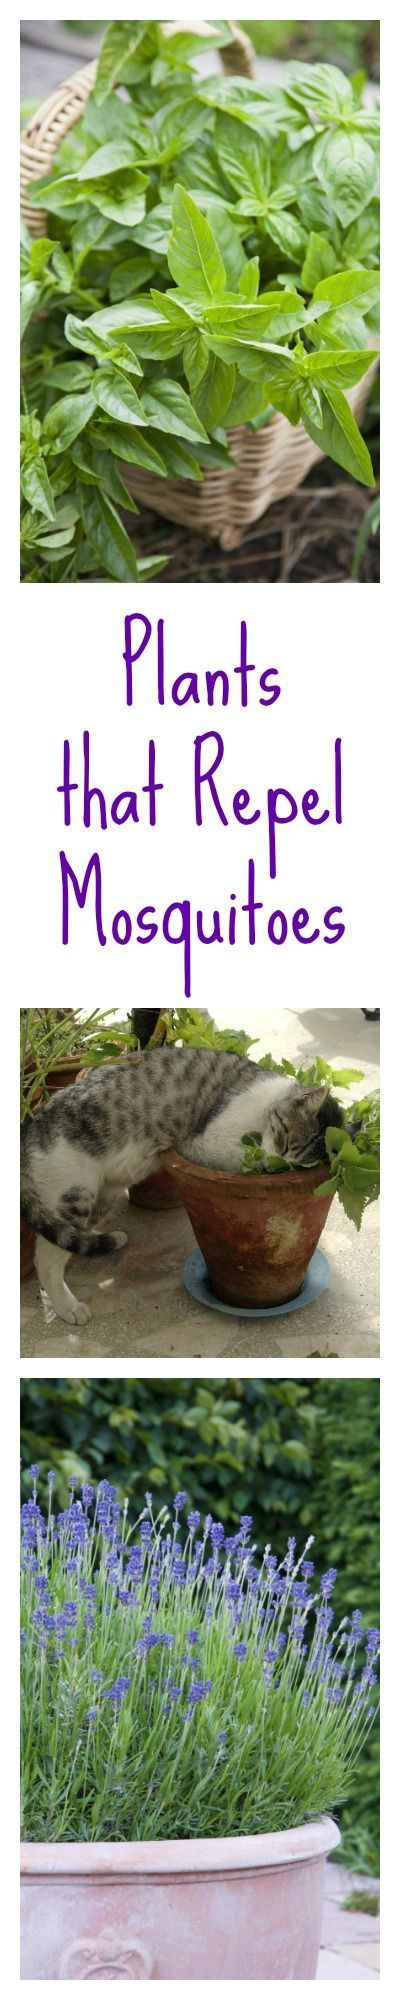 Forget the bug zapper—you can keep mosquitos away with garden plants like lavender and basil. No more pesky bugs!